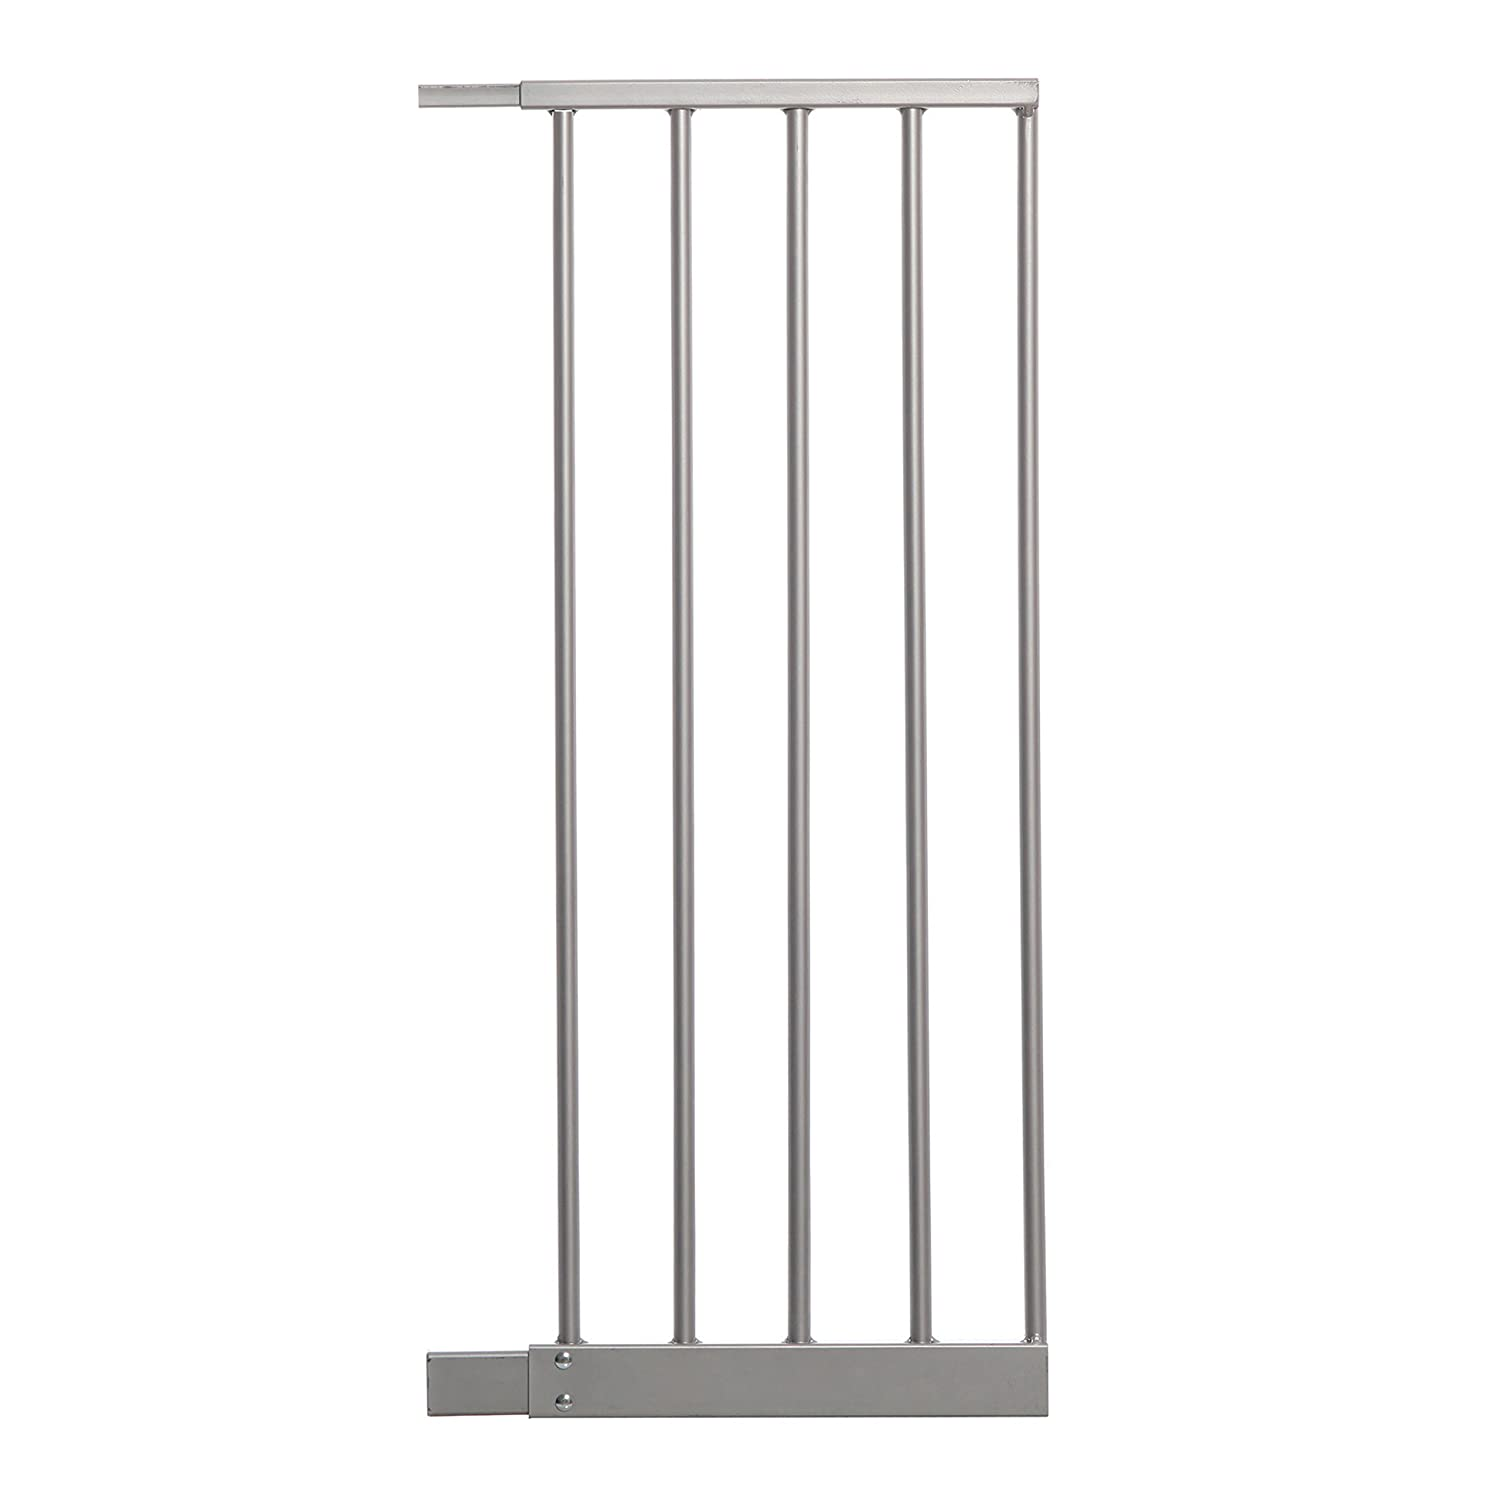 Dreambaby L873S 11-Inch Magnetic Sure Close Gate Extension (Silver)